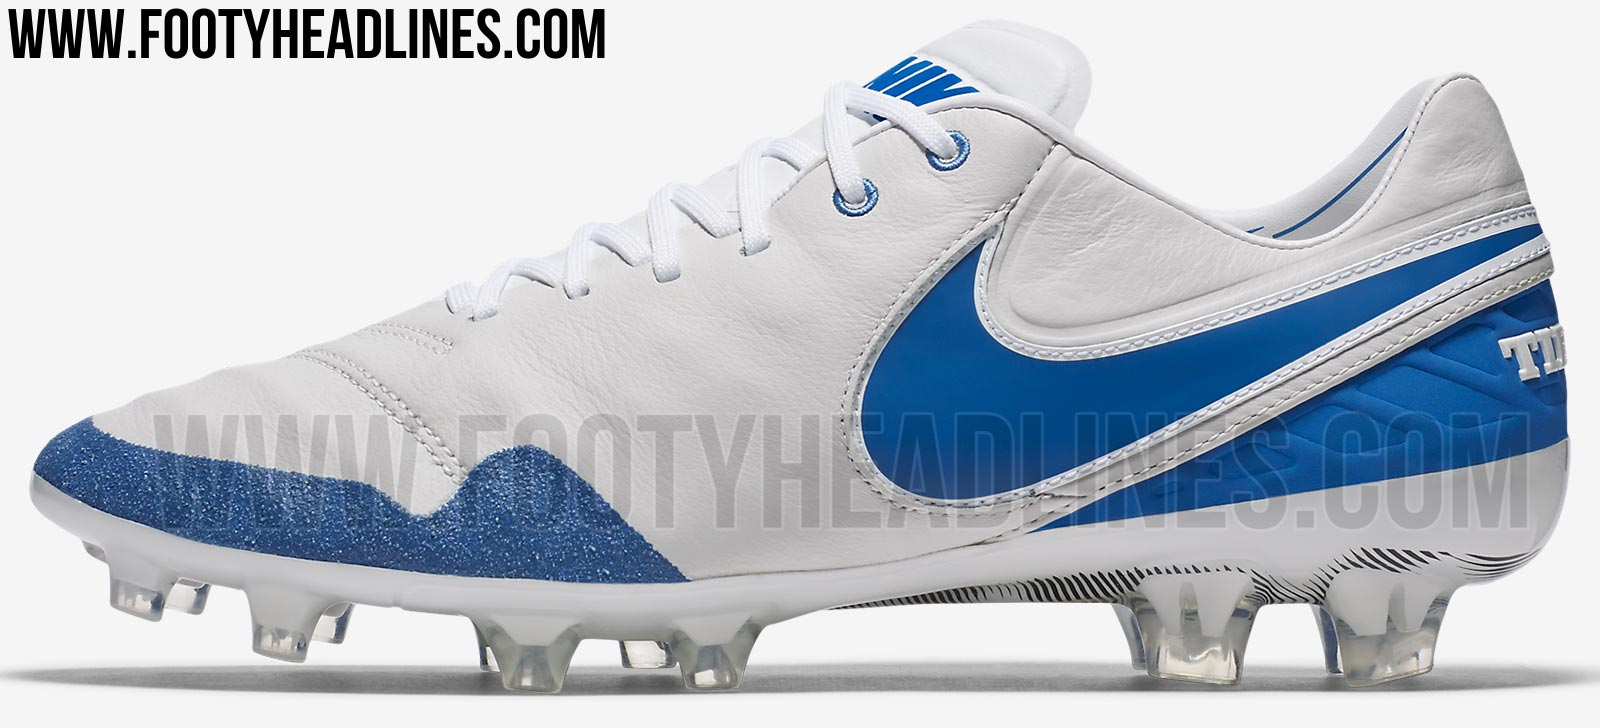 Also inspired by the Nike Air Max 90, the Revolution Pack Nike Tiempo  Legend 2017 soccer boot is mainly white with remarkable blue applications.